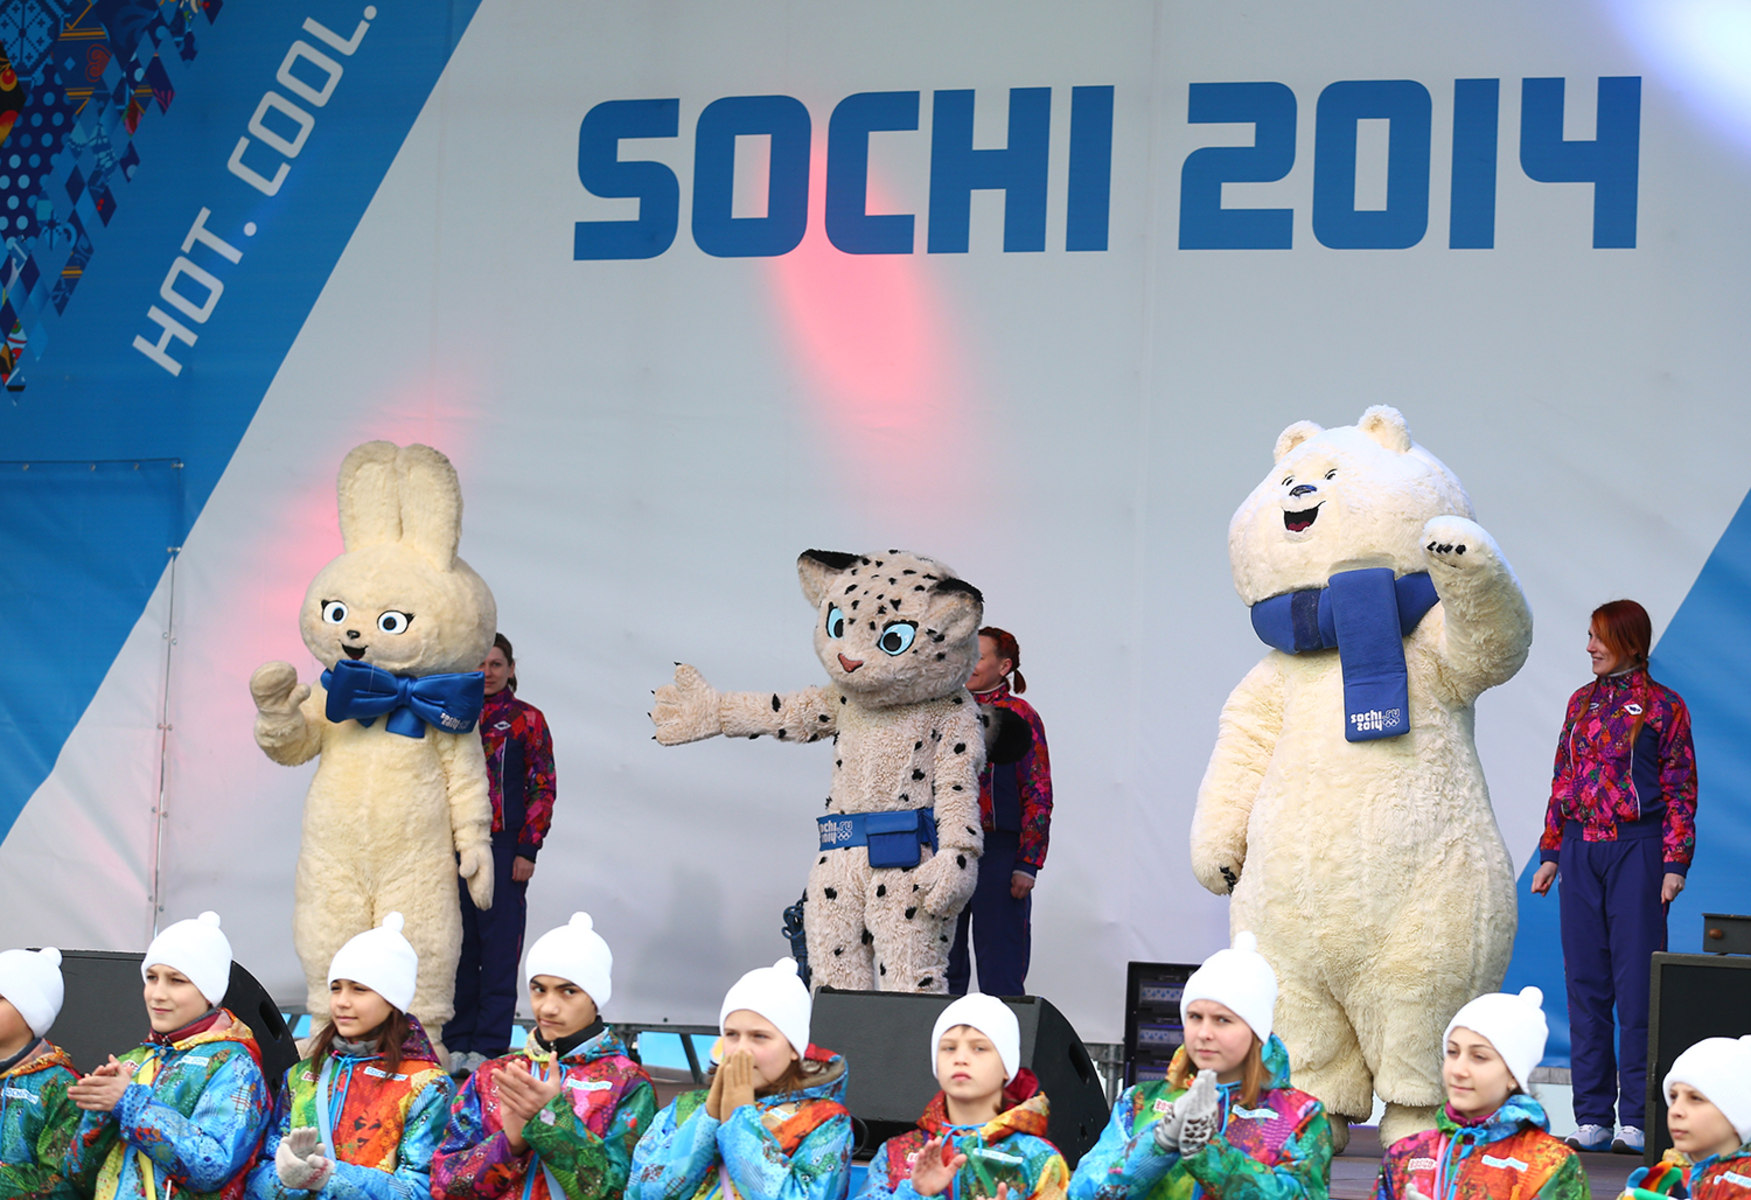 The Sochi Olympic mascots are here — and they're ... |Winter Olympics 2014 Mascot Names